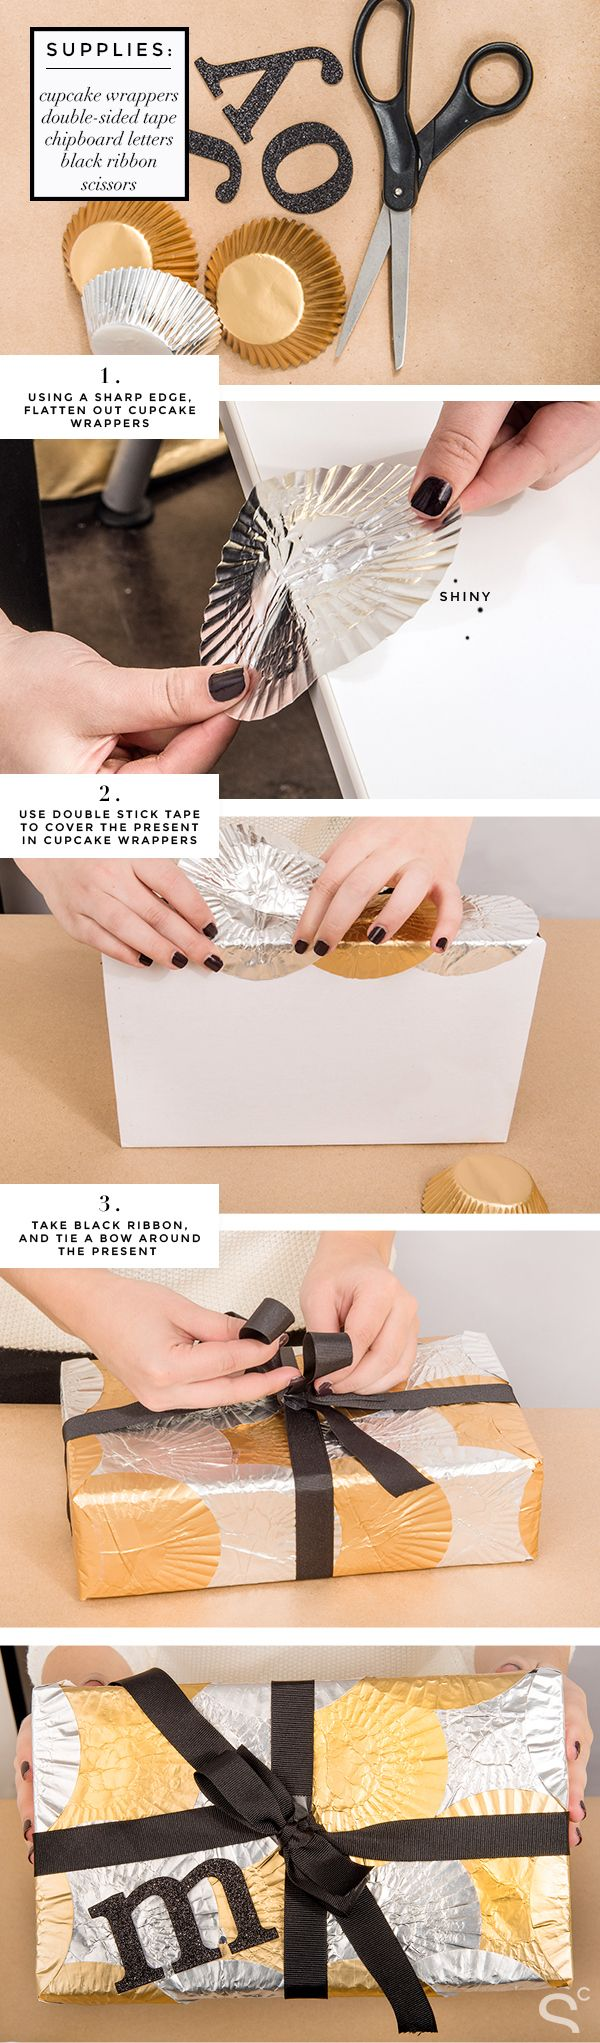 7 Days of Gift Wrapping Ideas DIY